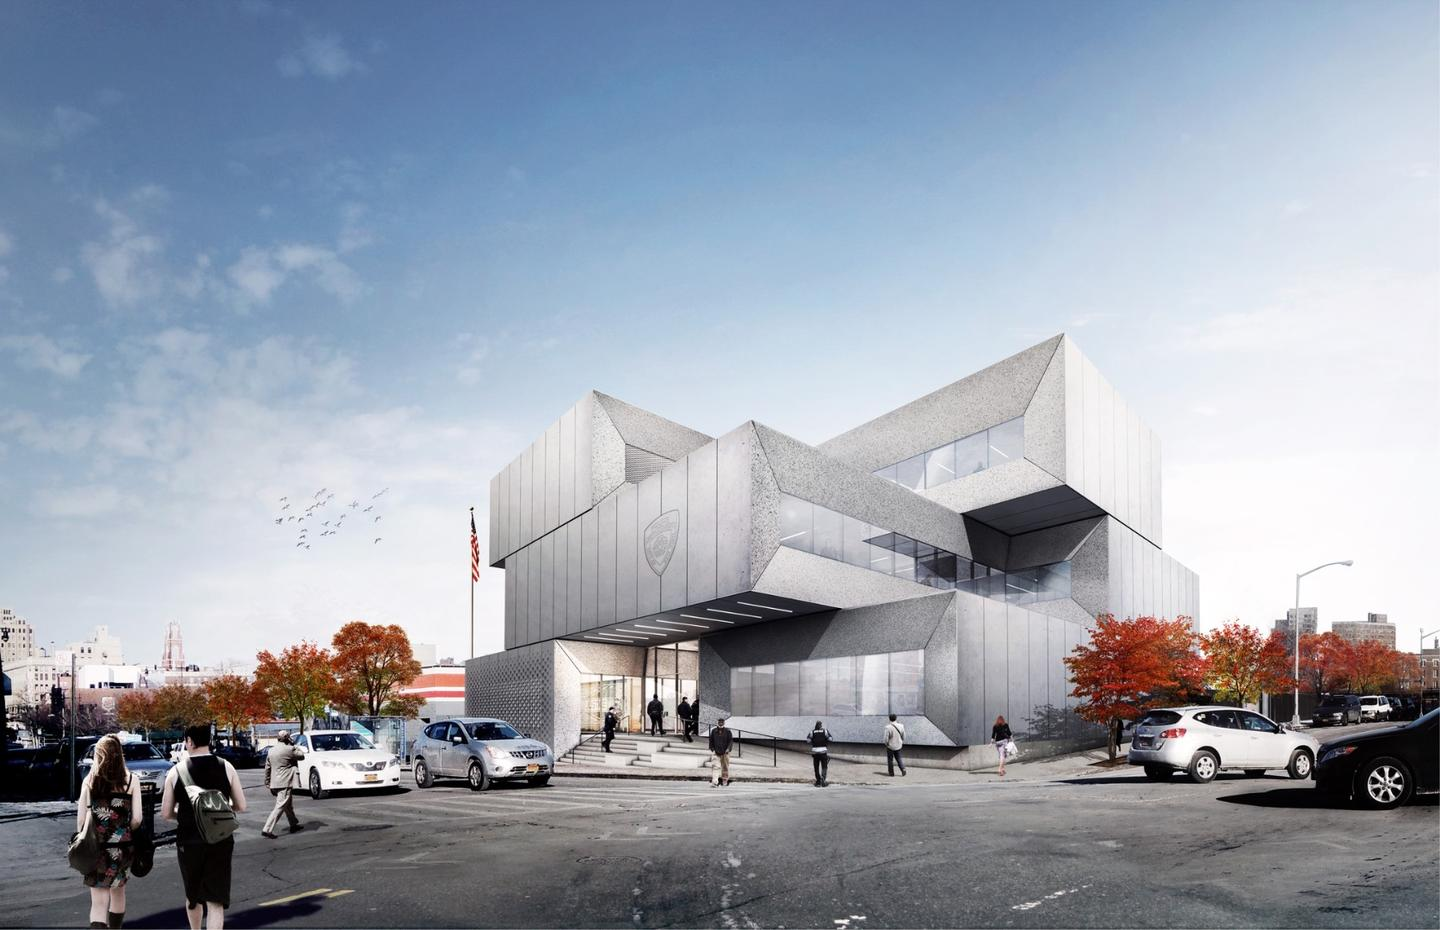 The 40th Precinct Station comprises a series of stacked block-like volumes